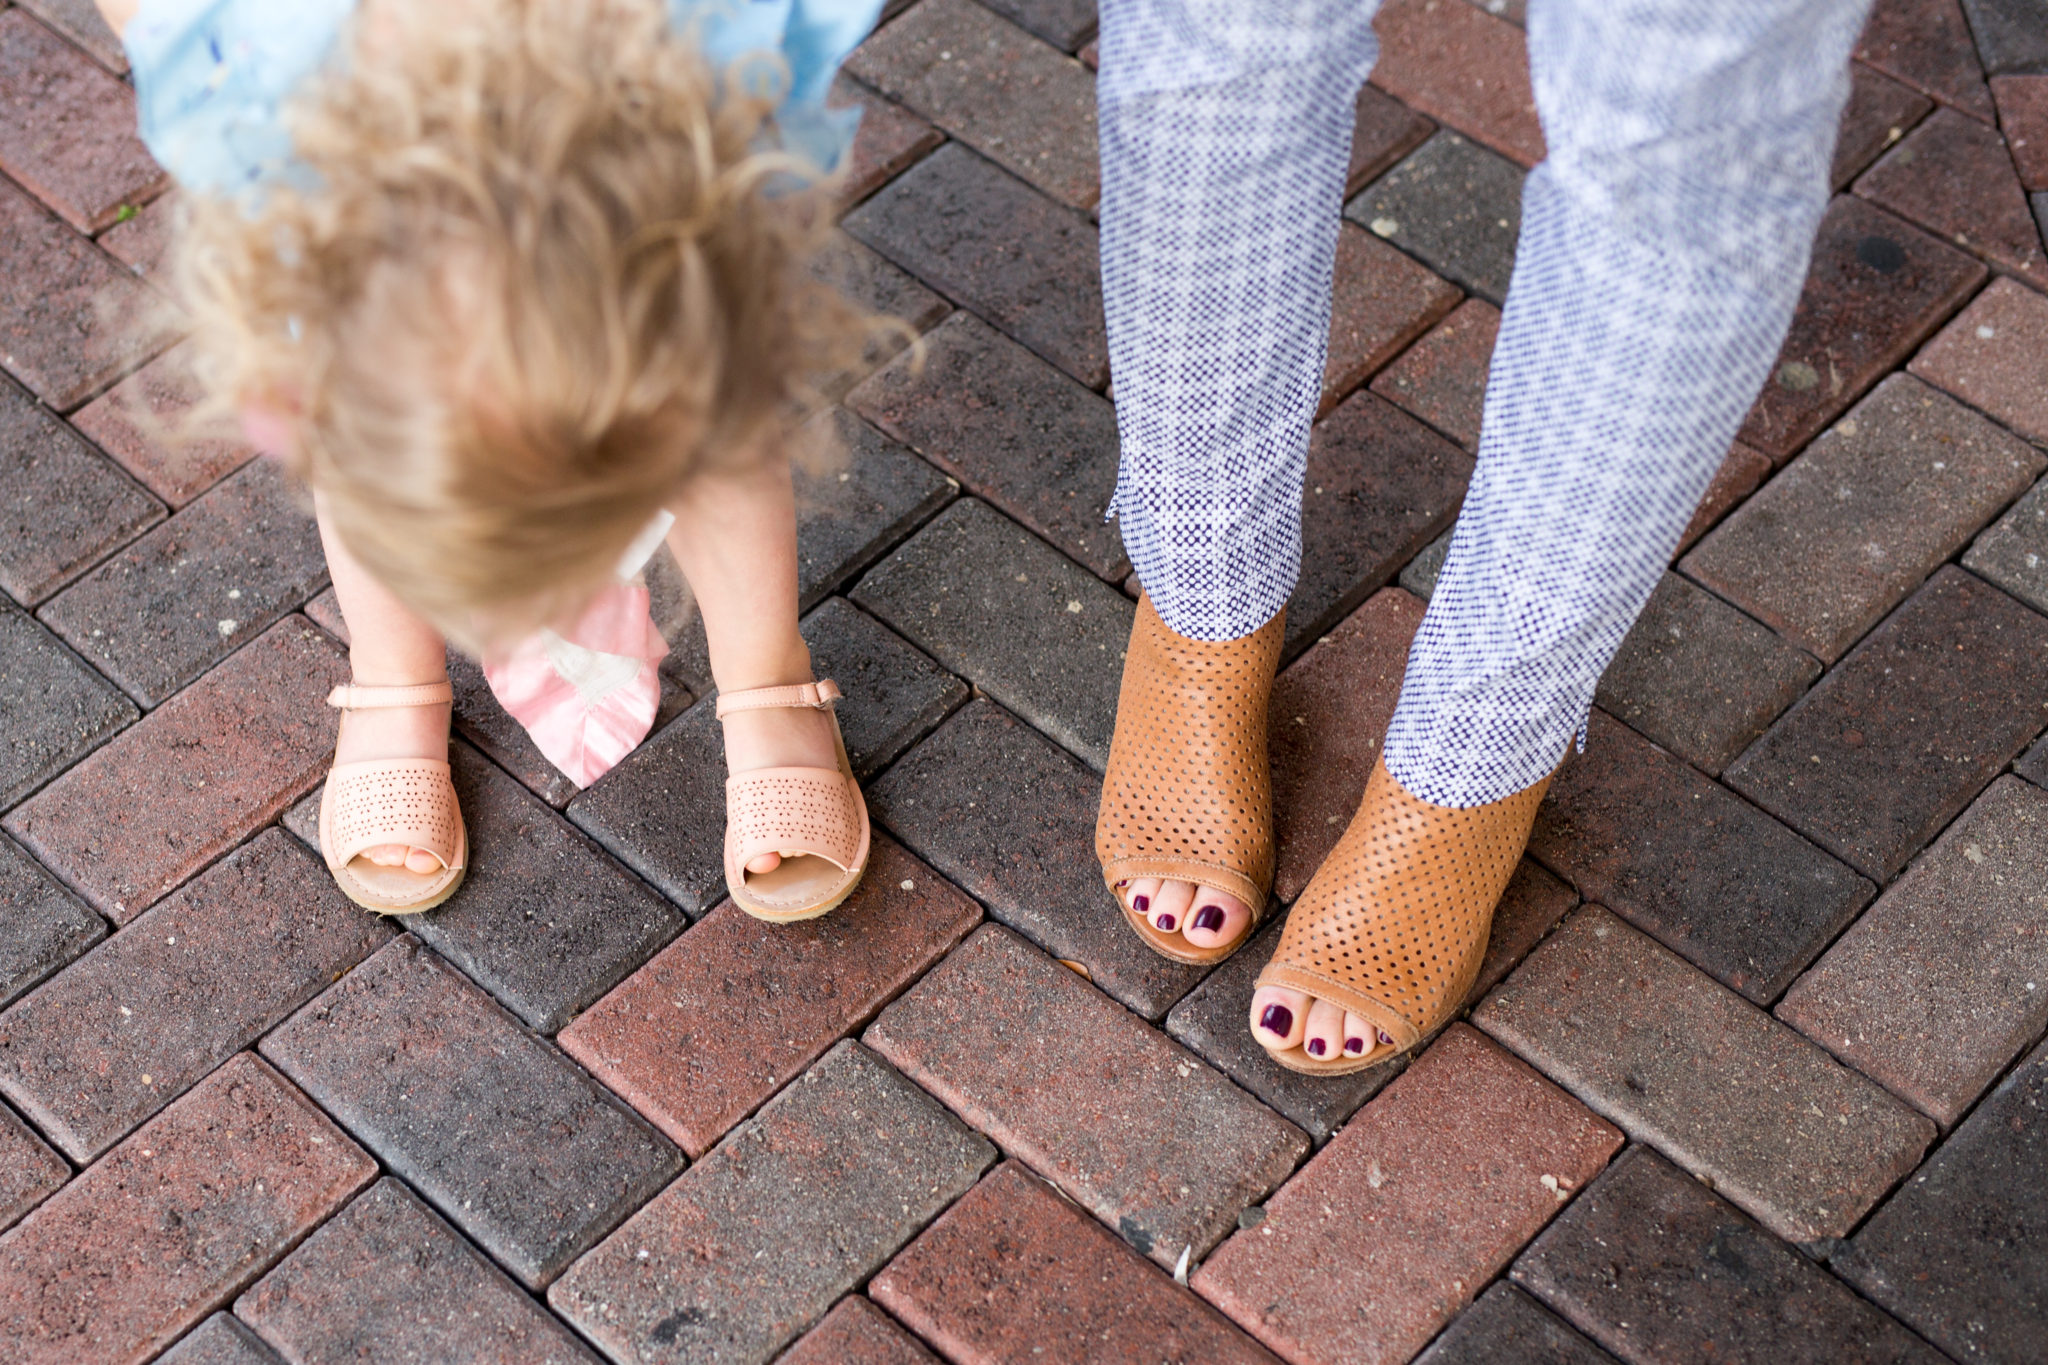 what to do and where to stay in delray beach florida   summer toddler style   summer style   beach style   west palm beach flordia   seagate hotel delray beach florida   family vacation with a toddler   margaret m slimming pants